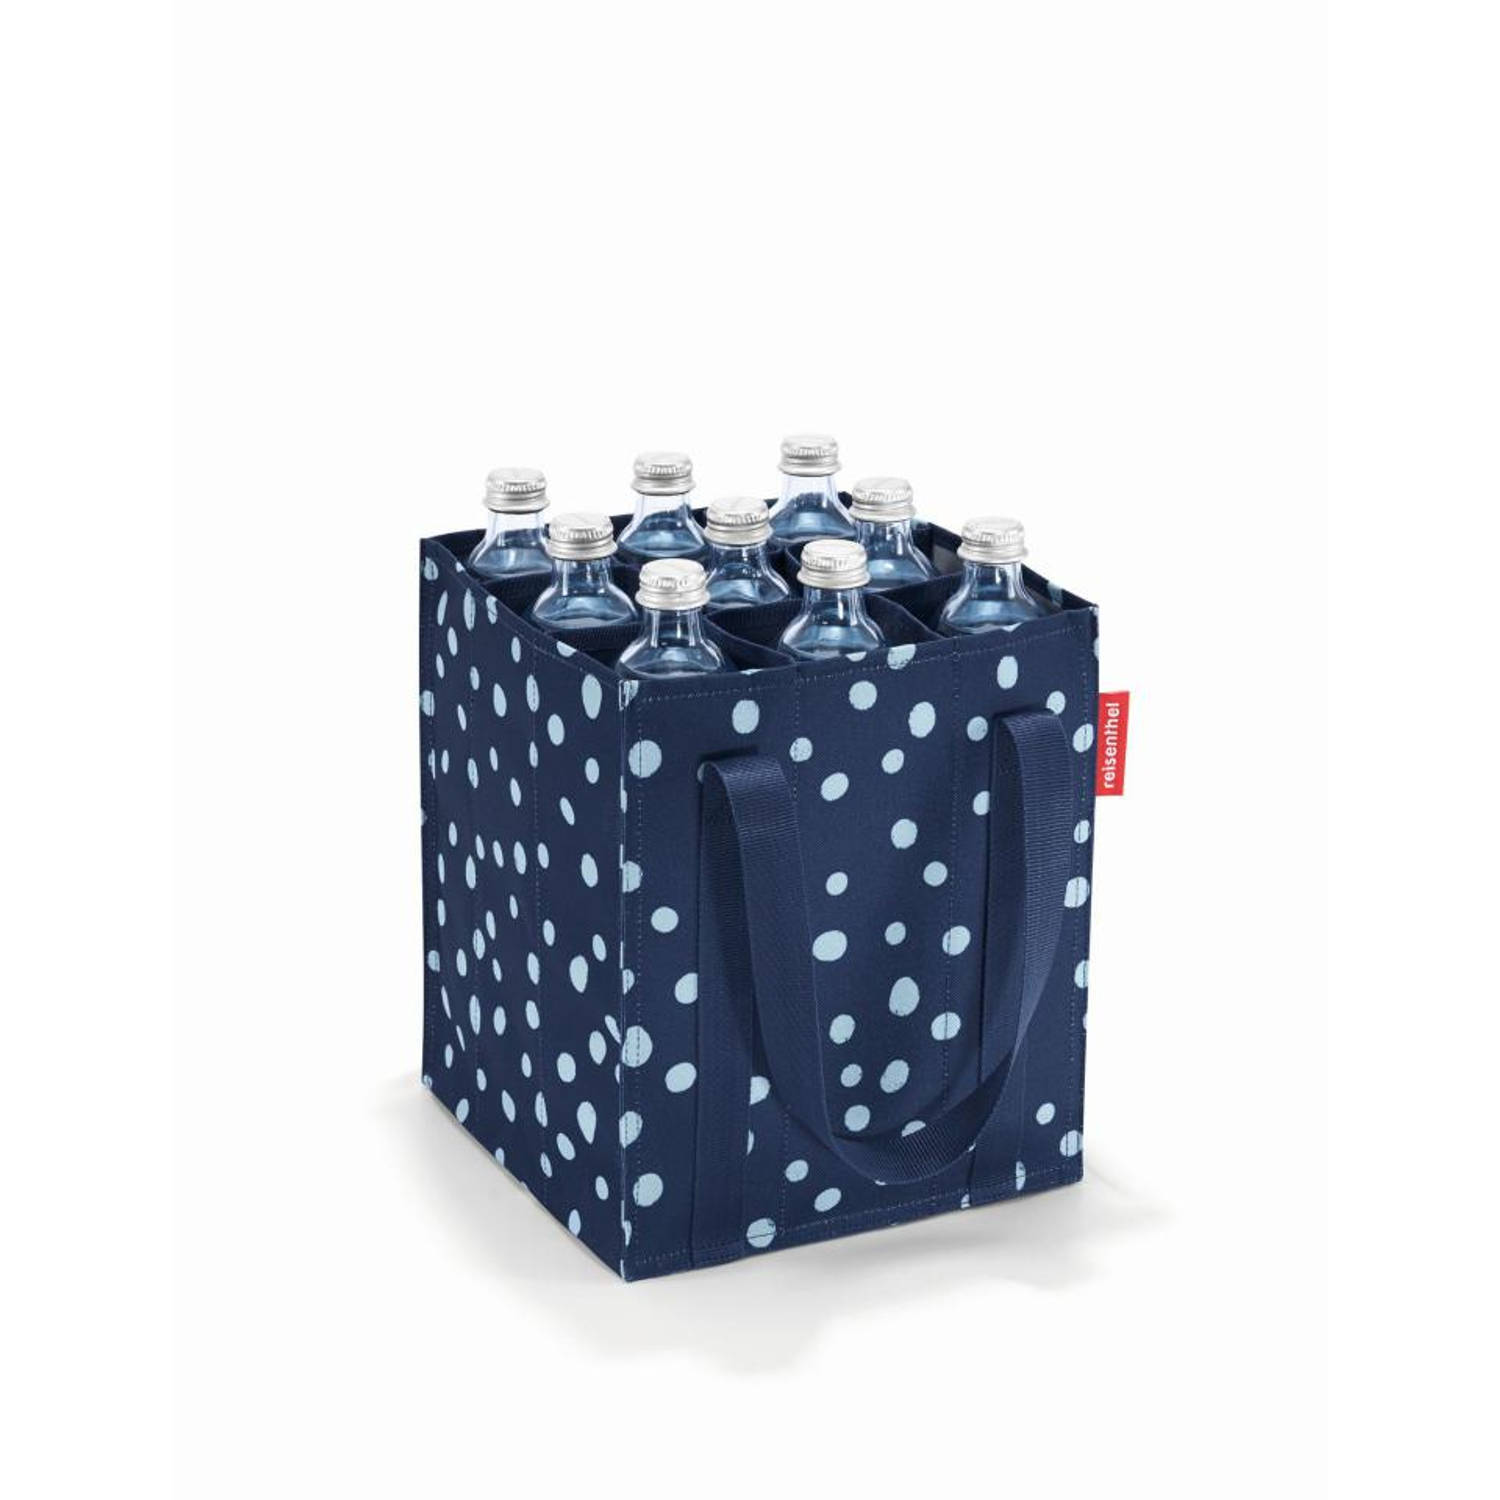 Reisenthel bottlebag Spots - Navy - 9 liter